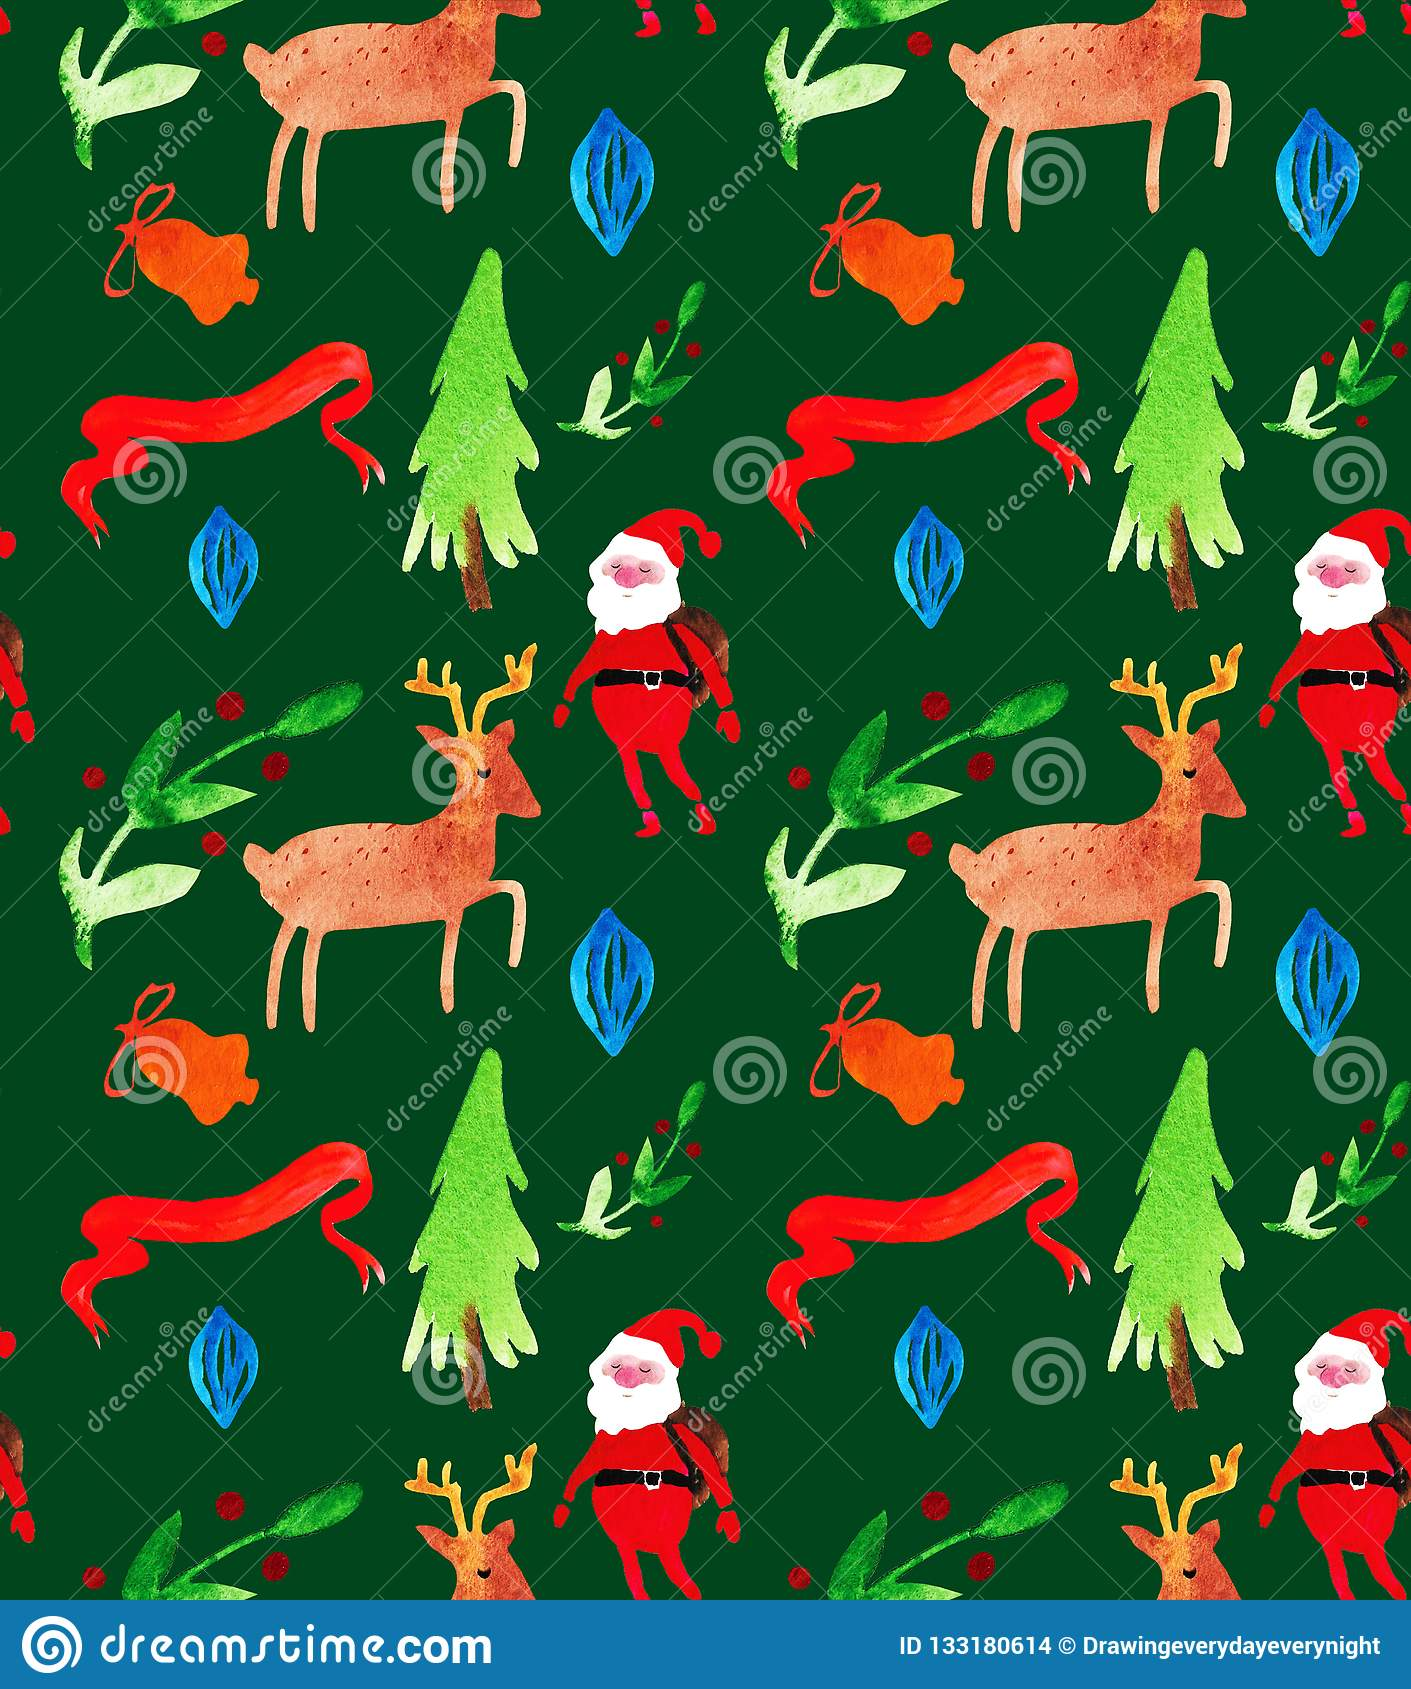 Watercolor Christmas illustrations seamless pattern with Santa Clause, deer, trees and berries . Winter New Year theme.